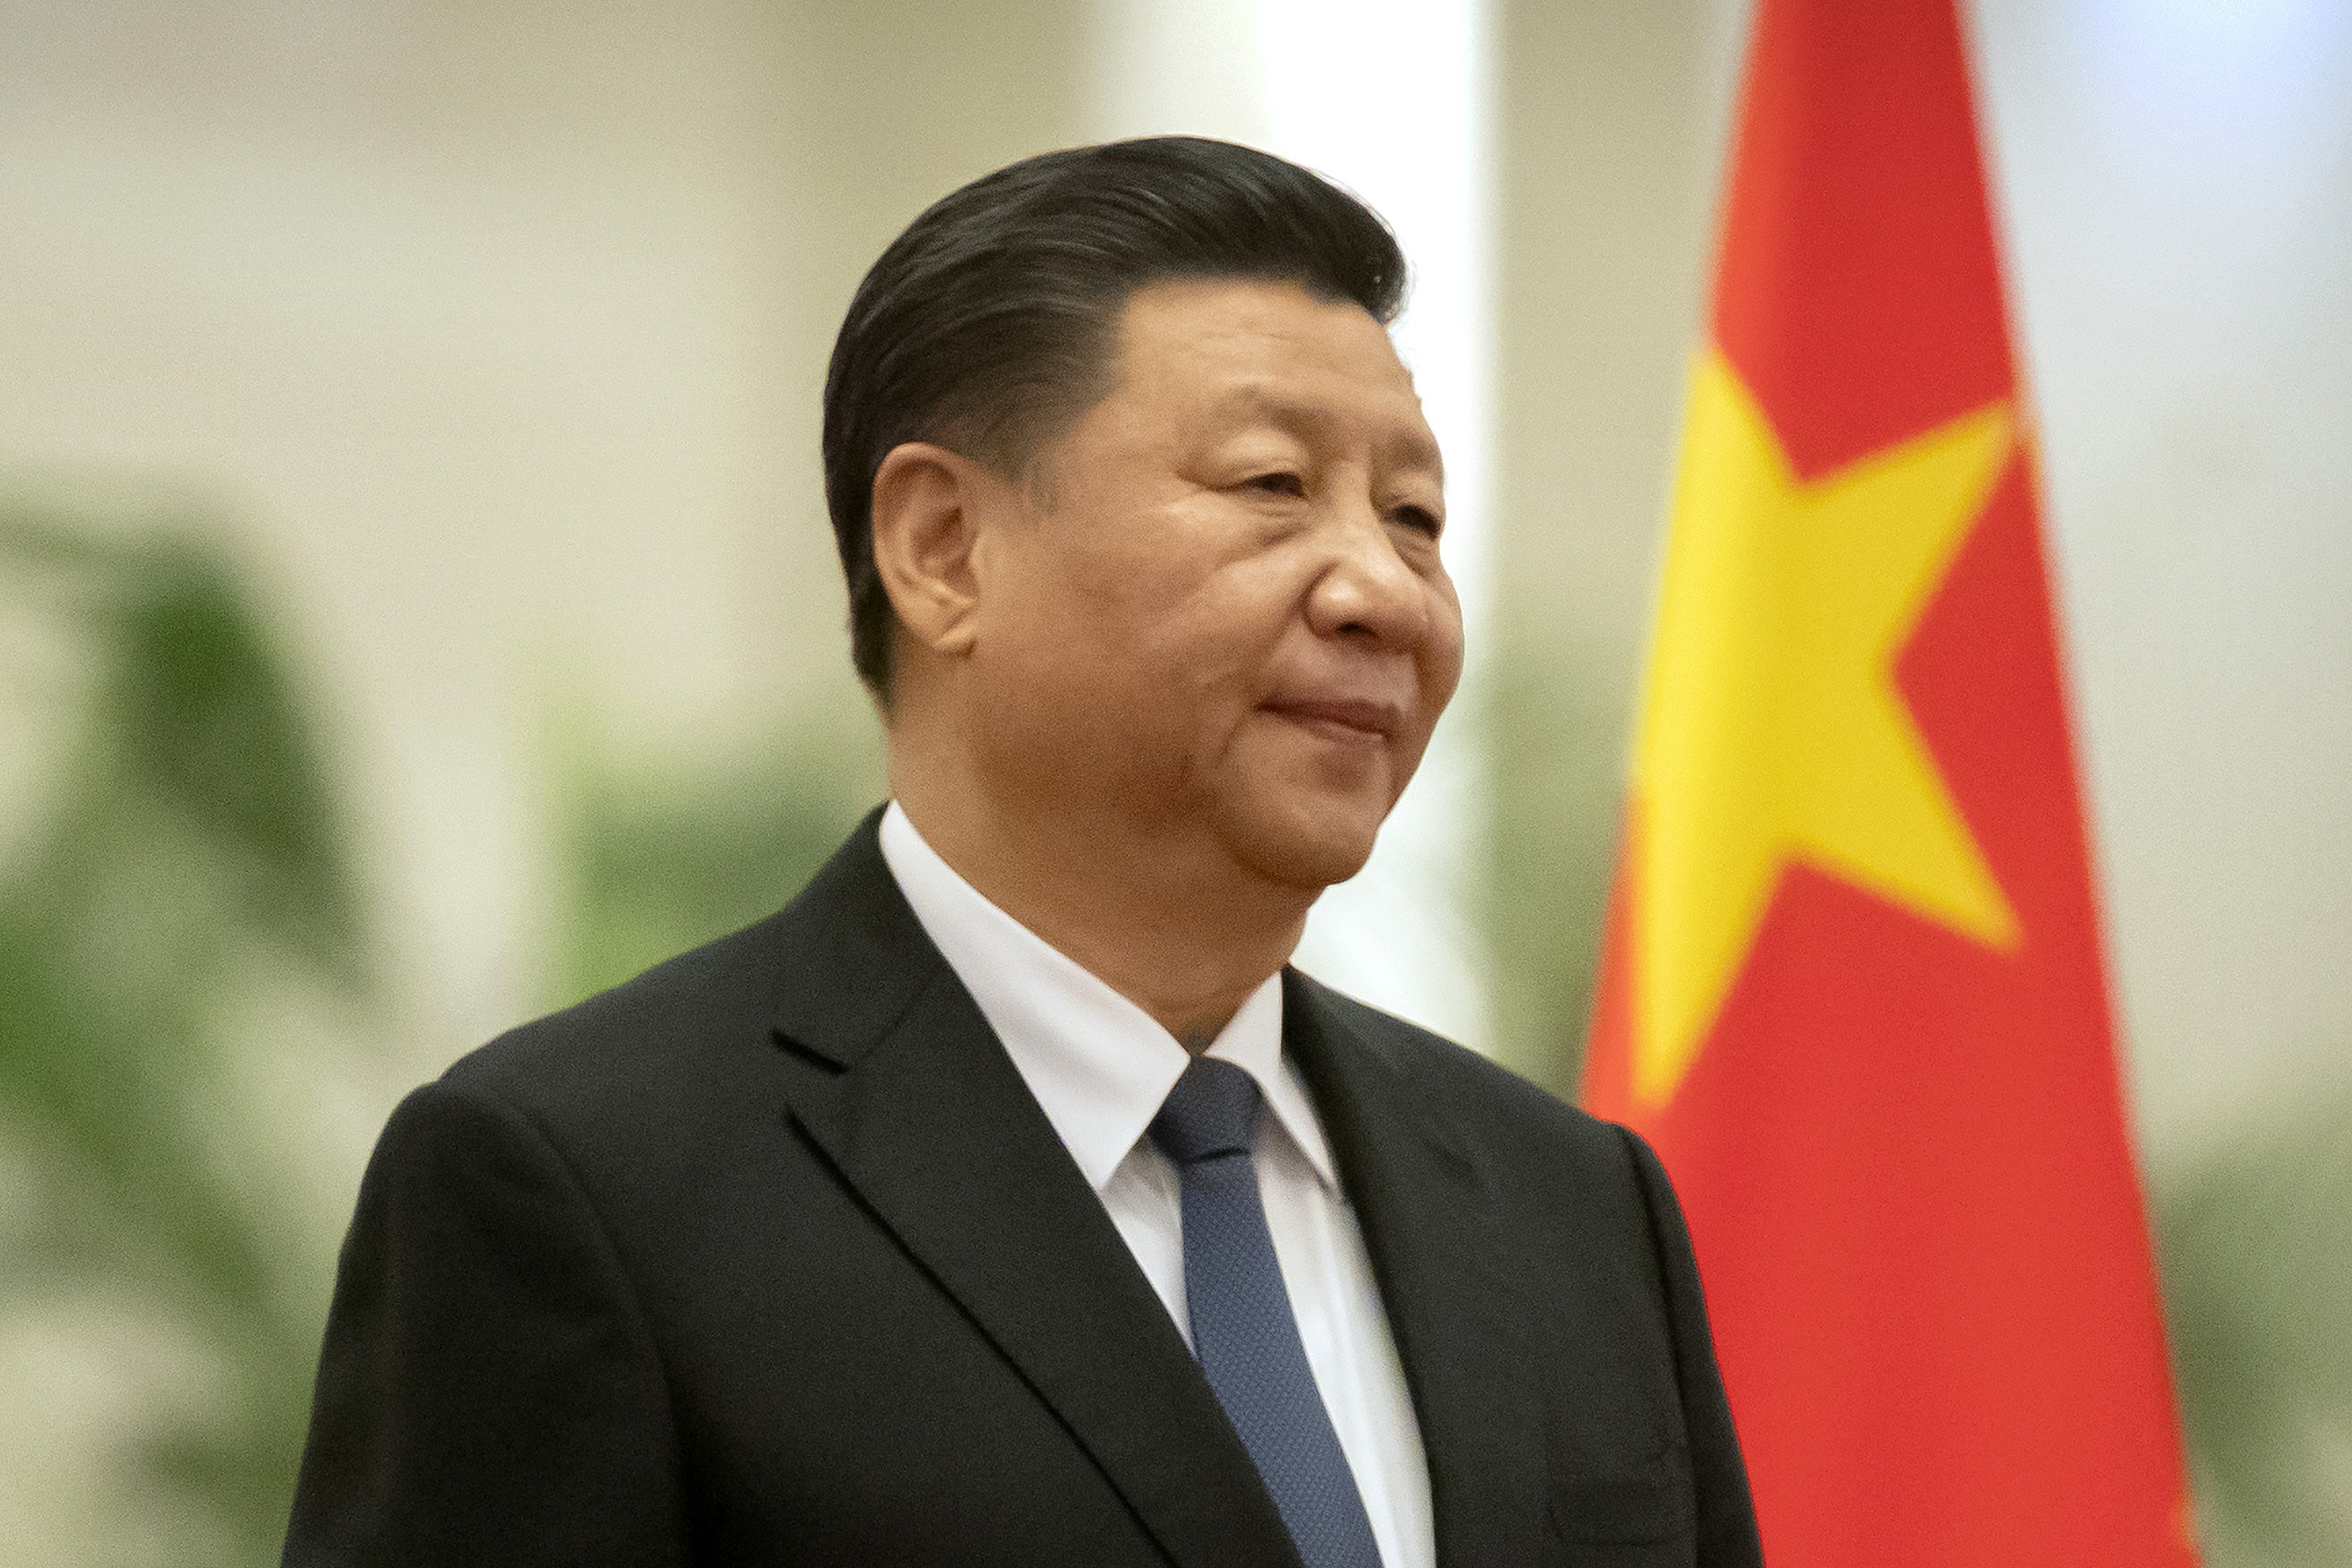 High expectations for Xi Jinping's visit to mark 70th anniversary of China-Myanmar relations